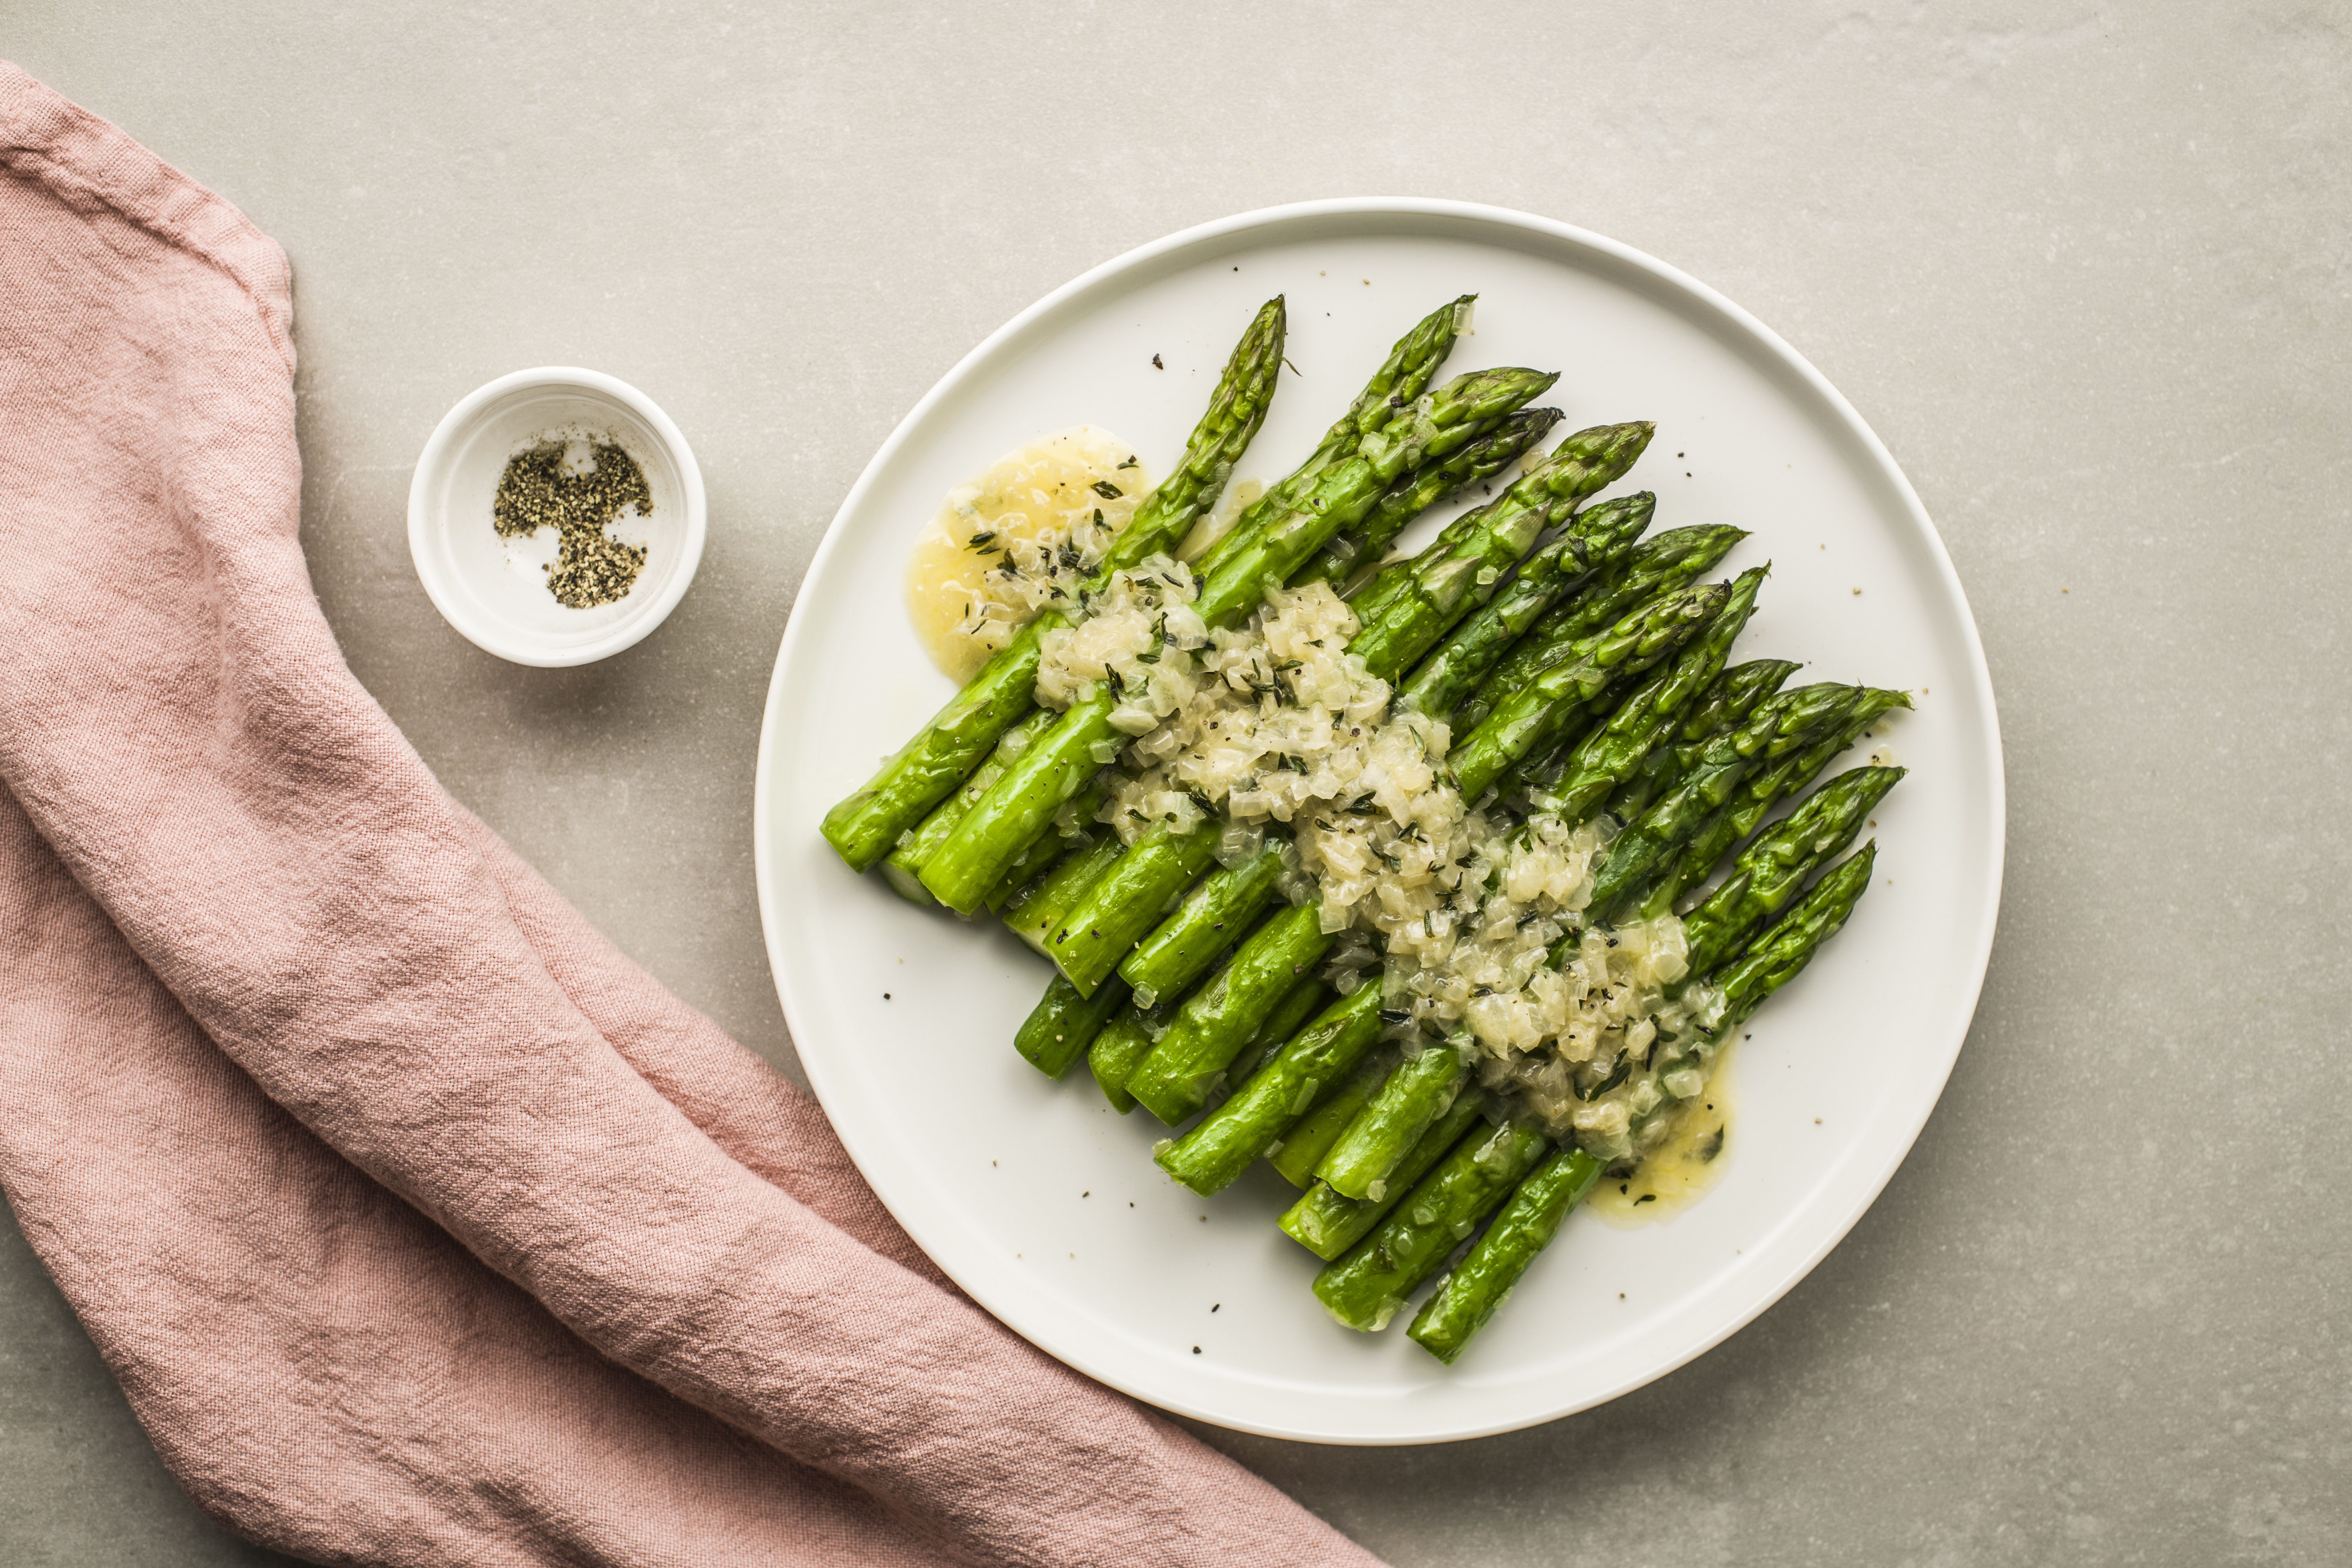 Pour over cooked asparagus